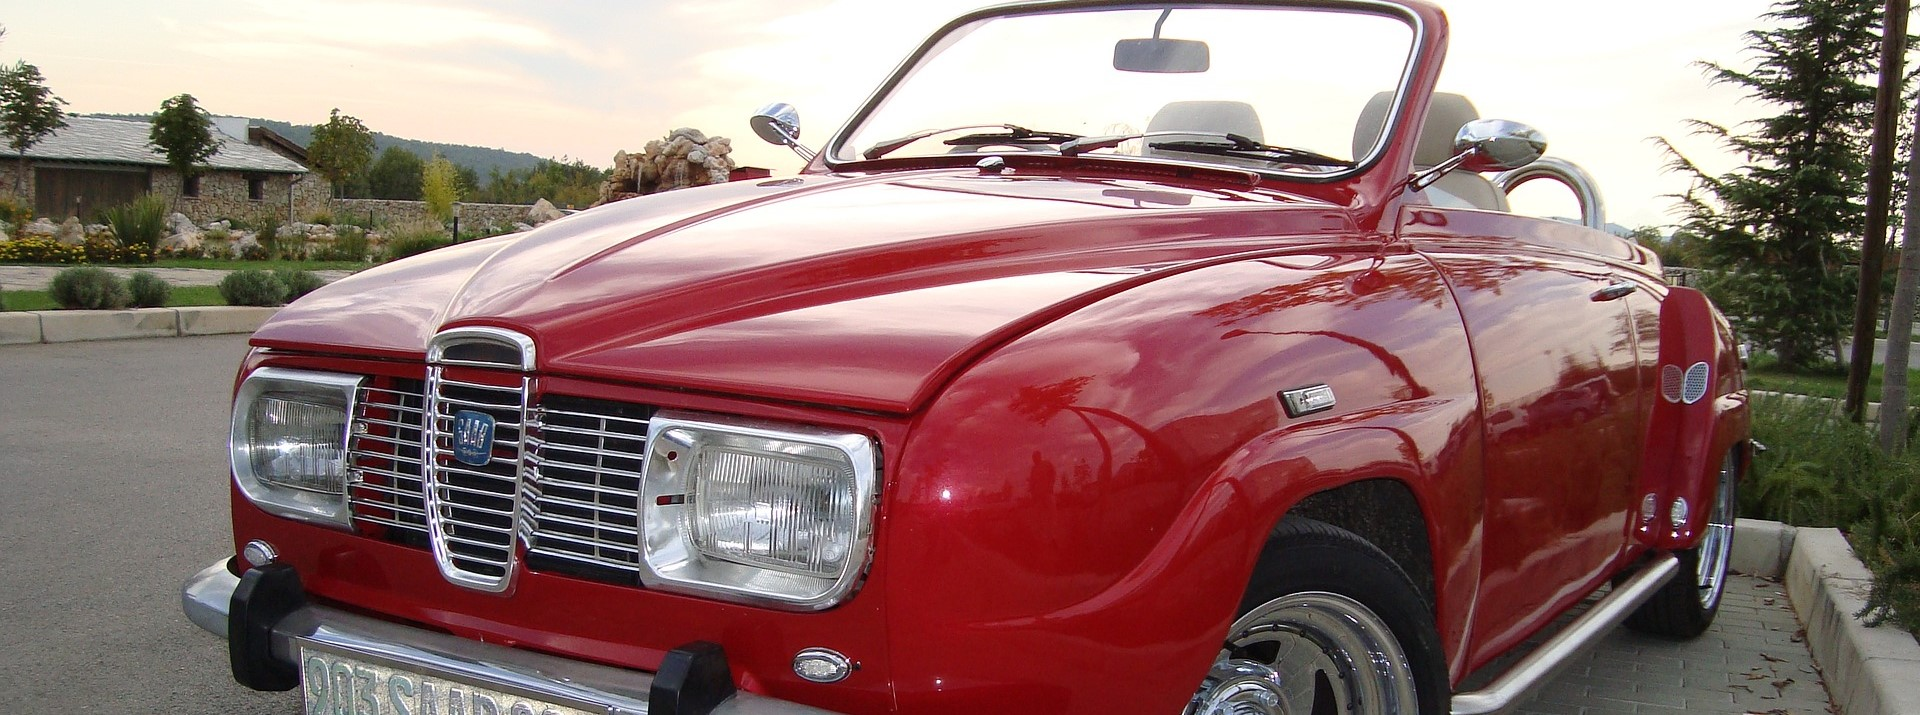 Red Vintage Car in Havre de Grace, Maryland | Breast Cancer Car Donations